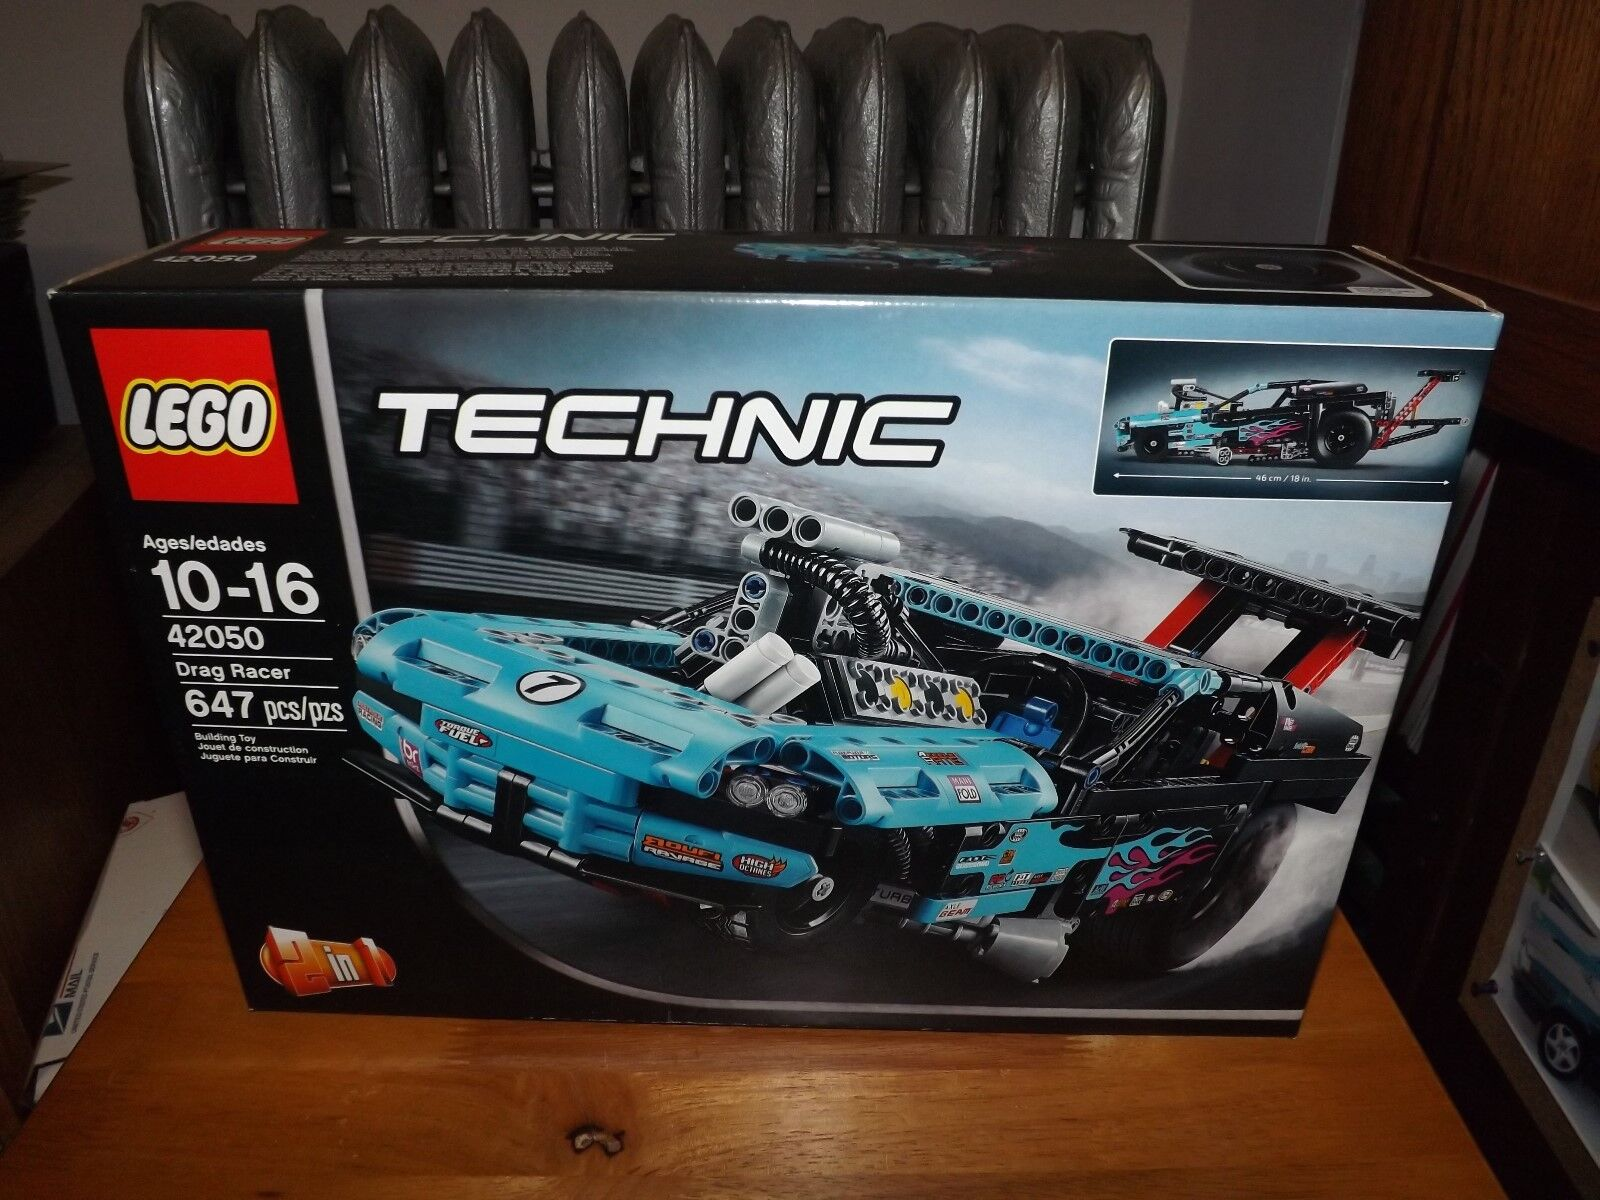 LEGO, TECHNIC, DRAG RACER, KIT  42050, 647 PIECES, NEW IN BOX, 2016